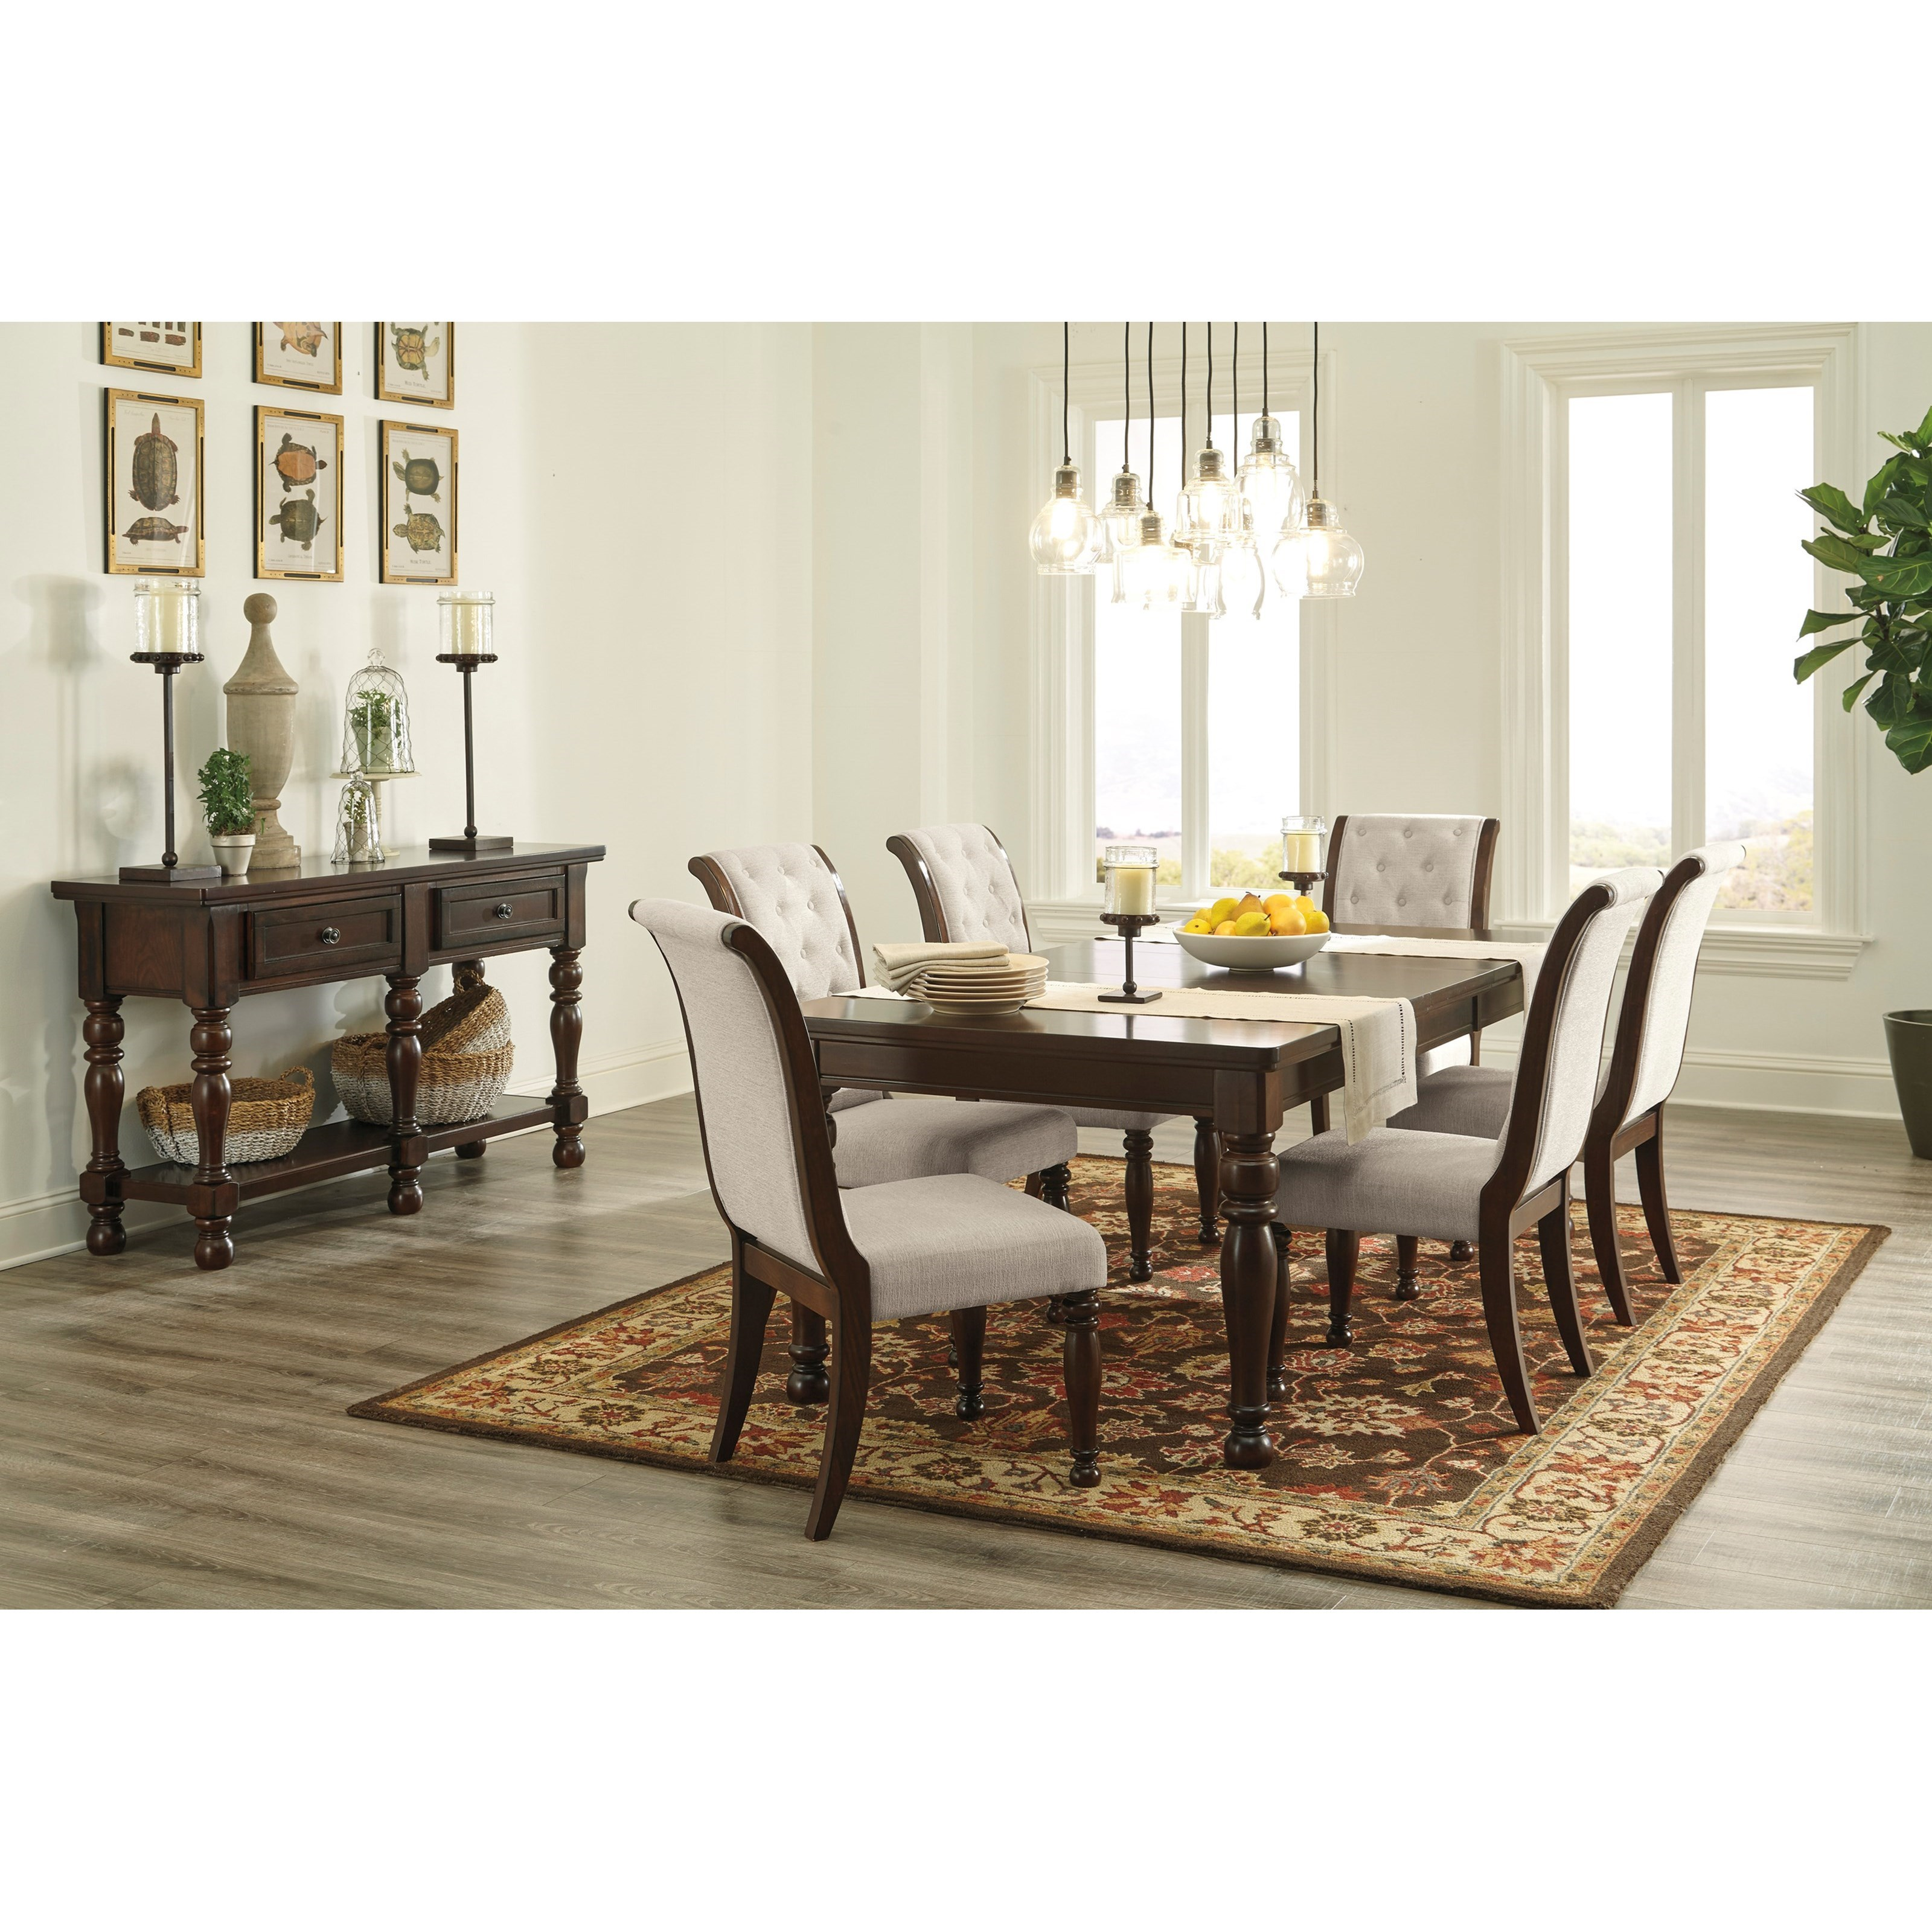 Ashley Furniture Porter D697 35 Rectangular Extension: Ashley Furniture Porter Dining Upholstered Side Chair With